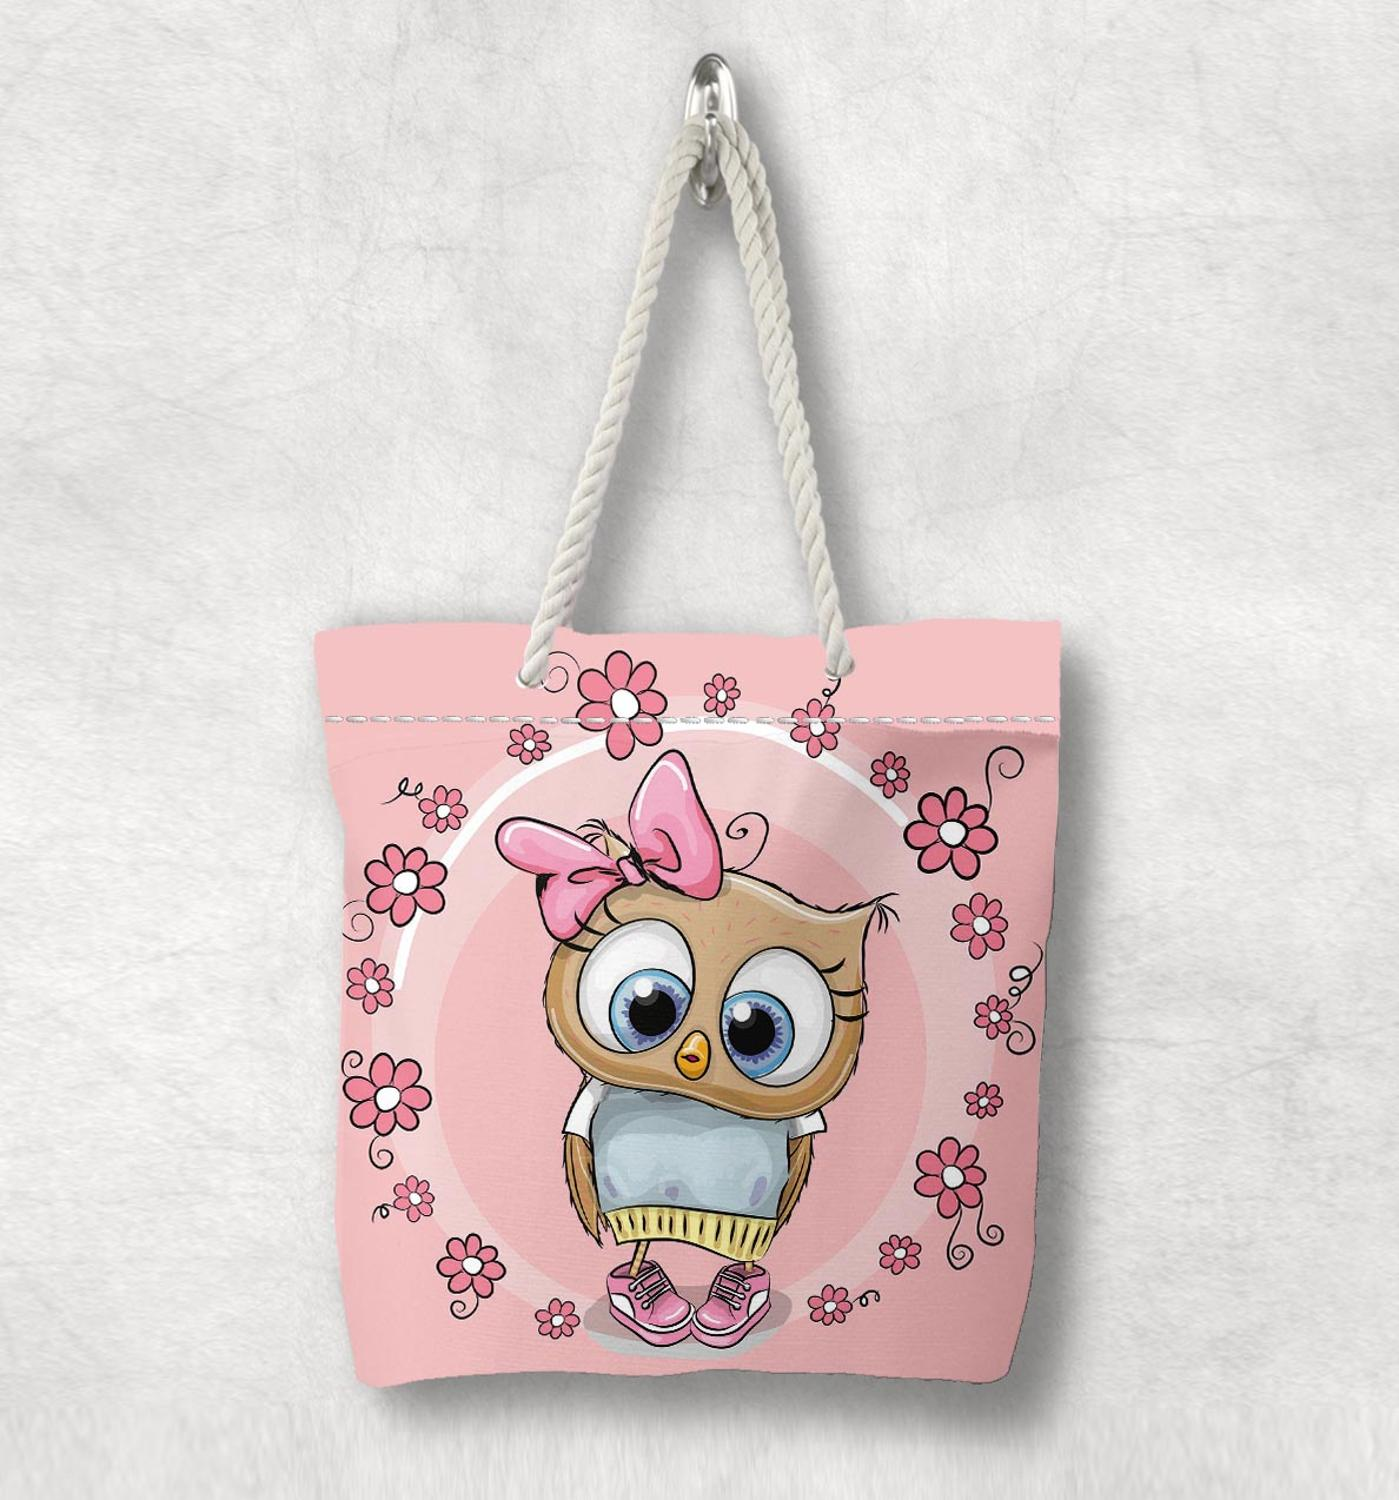 Else Pink Round Flowers Cute Owls Floral New Fashion White Rope Handle Canvas Bag Cotton Canvas Zippered Tote Bag Shoulder Bag